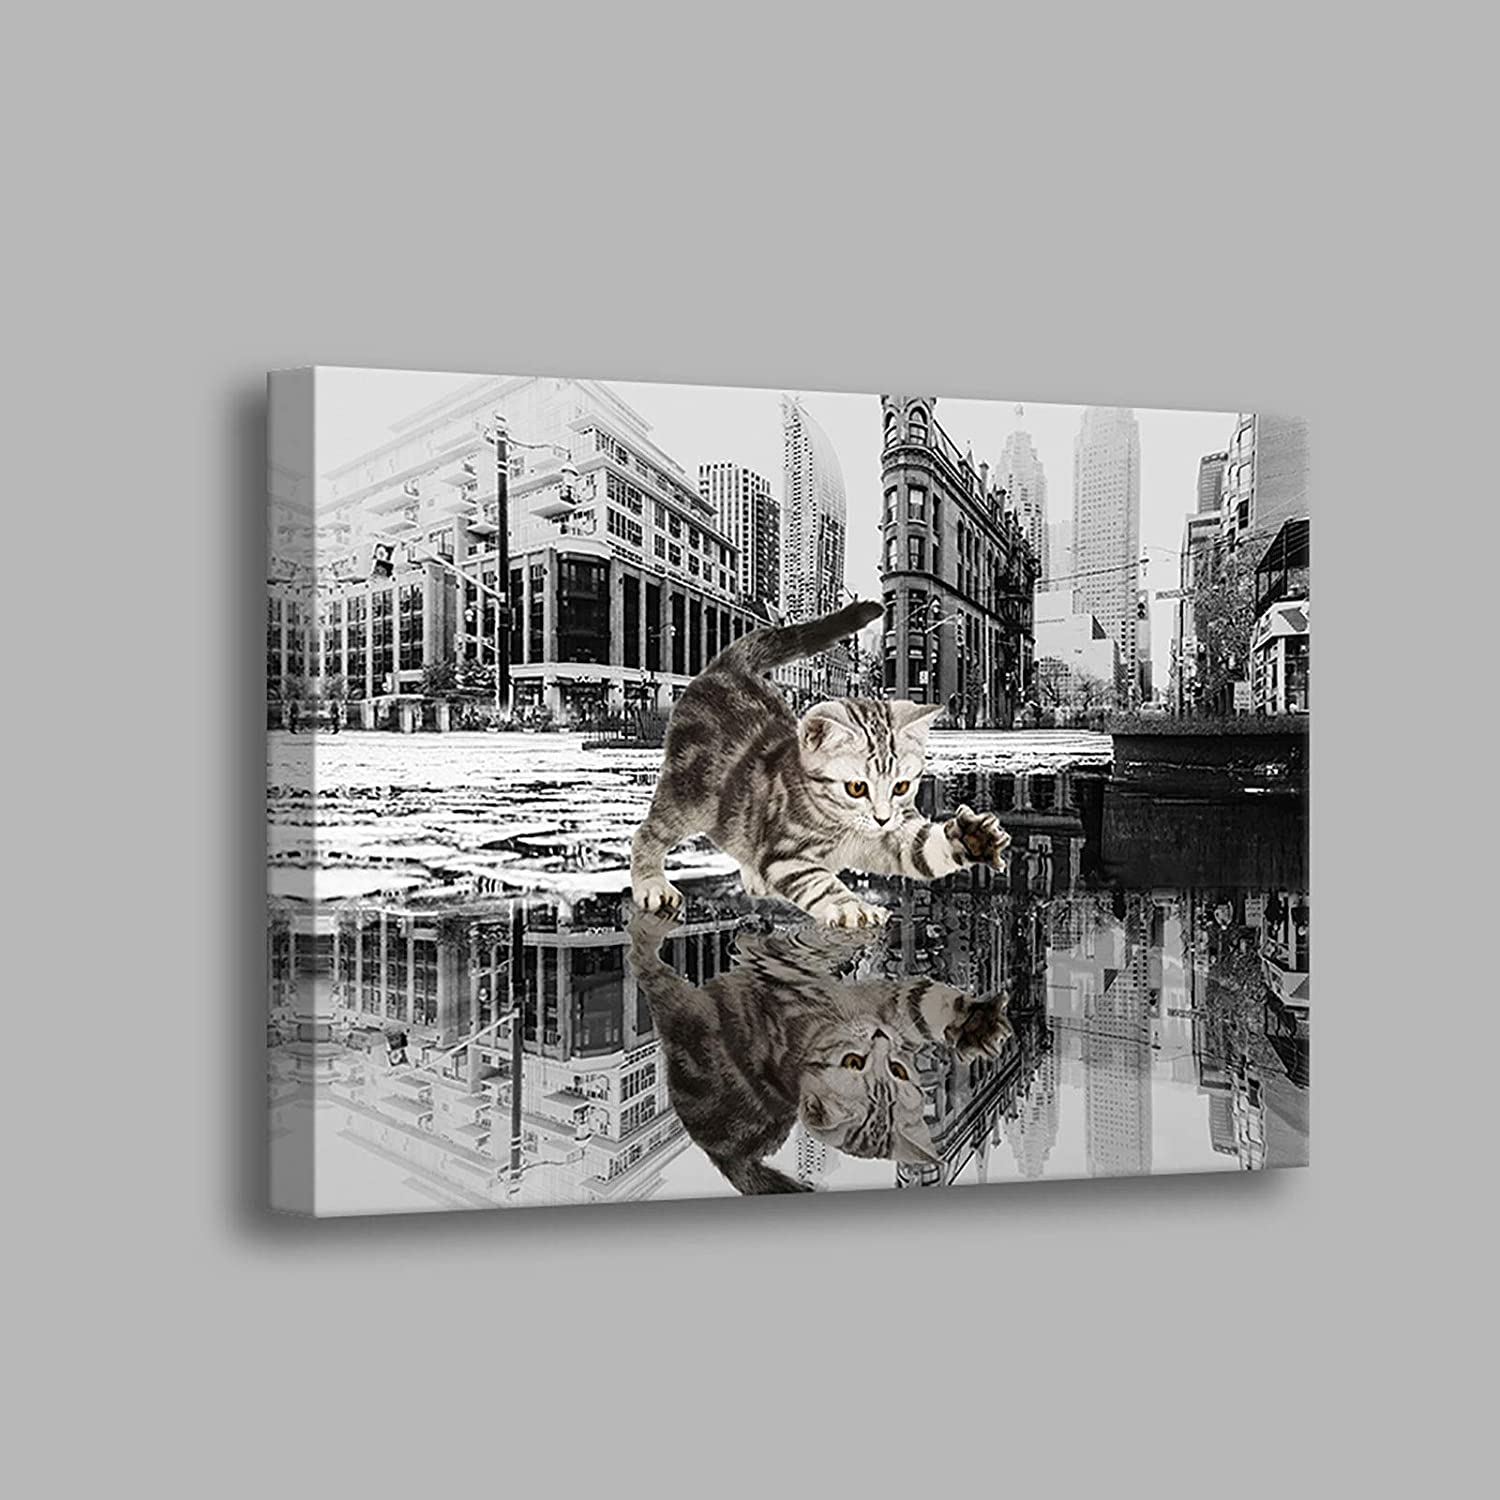 Bathroom-Decor New York City Wall Art Cat Canvas Prints Wall Decor for Bedroom Aesthetic Room Decor 12 x 16 inches Ready to Hang